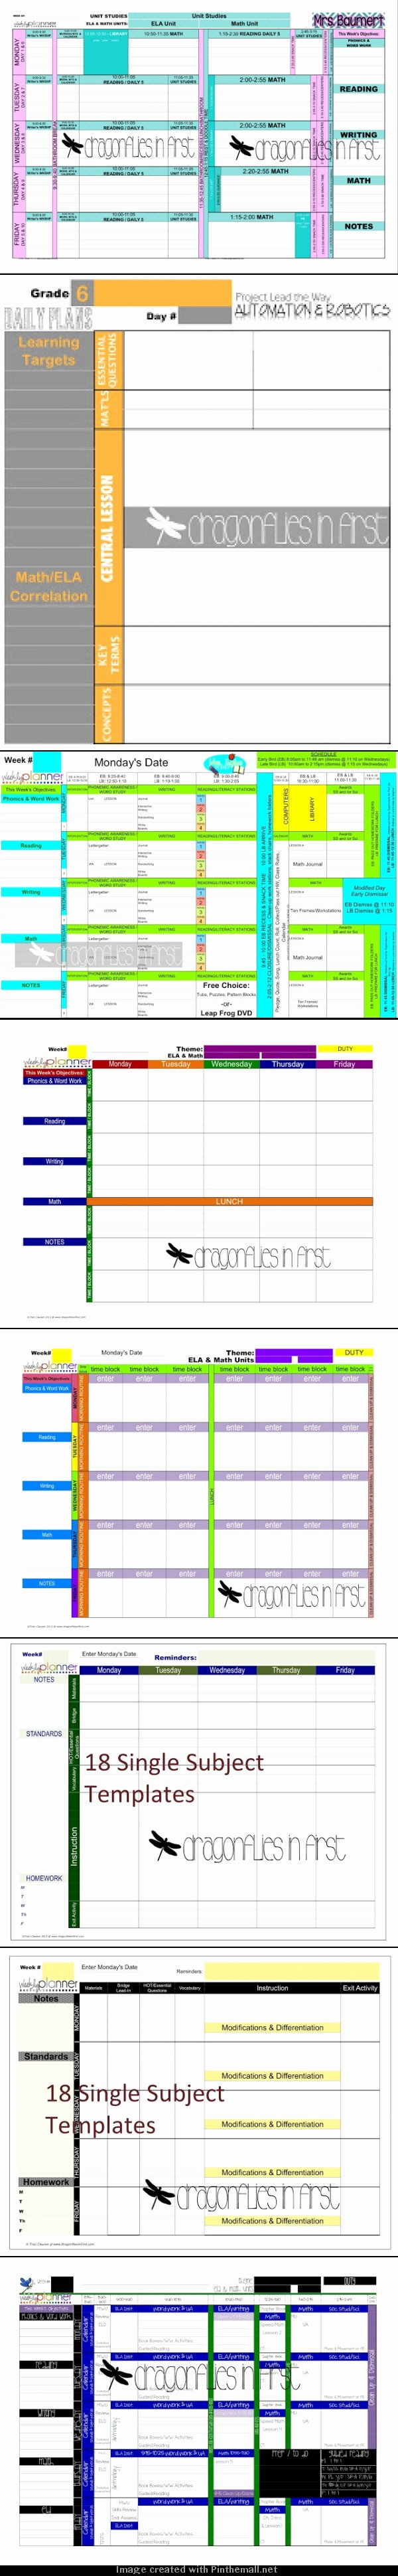 Ccs Lesson Plan Template Unique How to Customize Your Teacher Planner the Ultimate